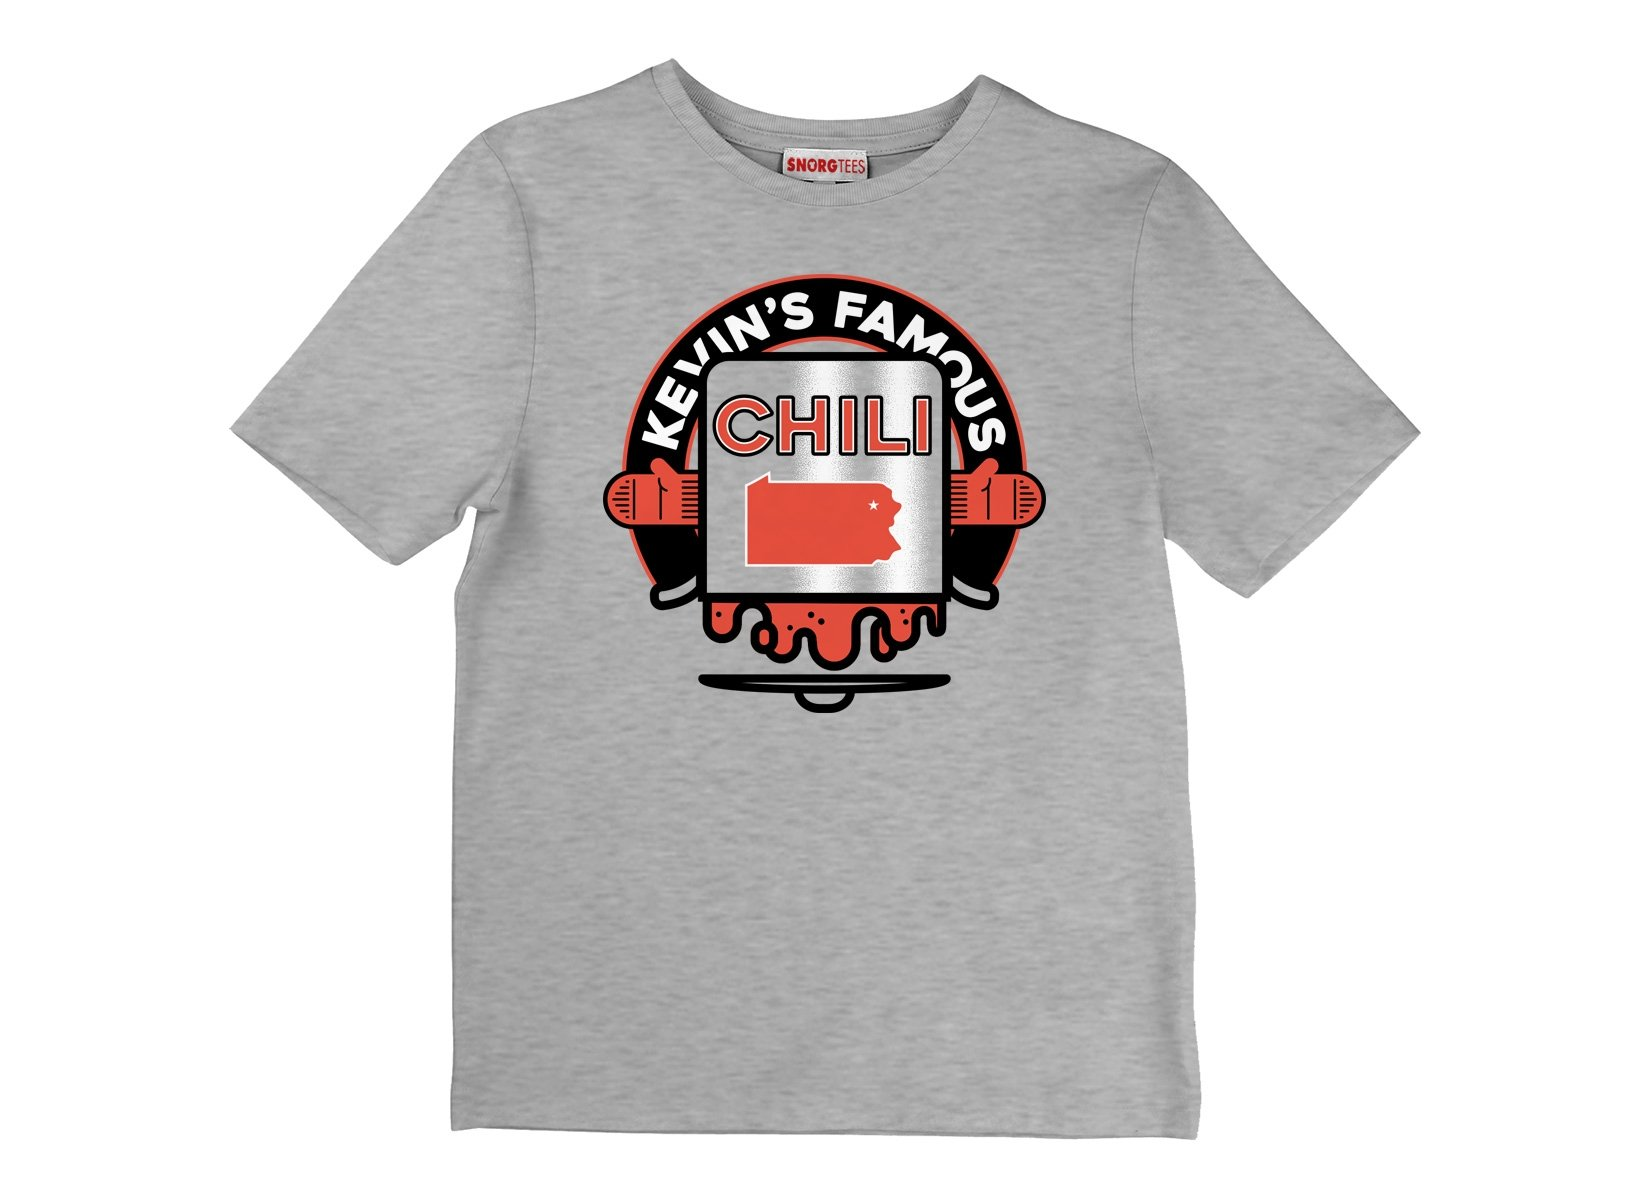 Kevin's Famous Chili on Kids T-Shirt